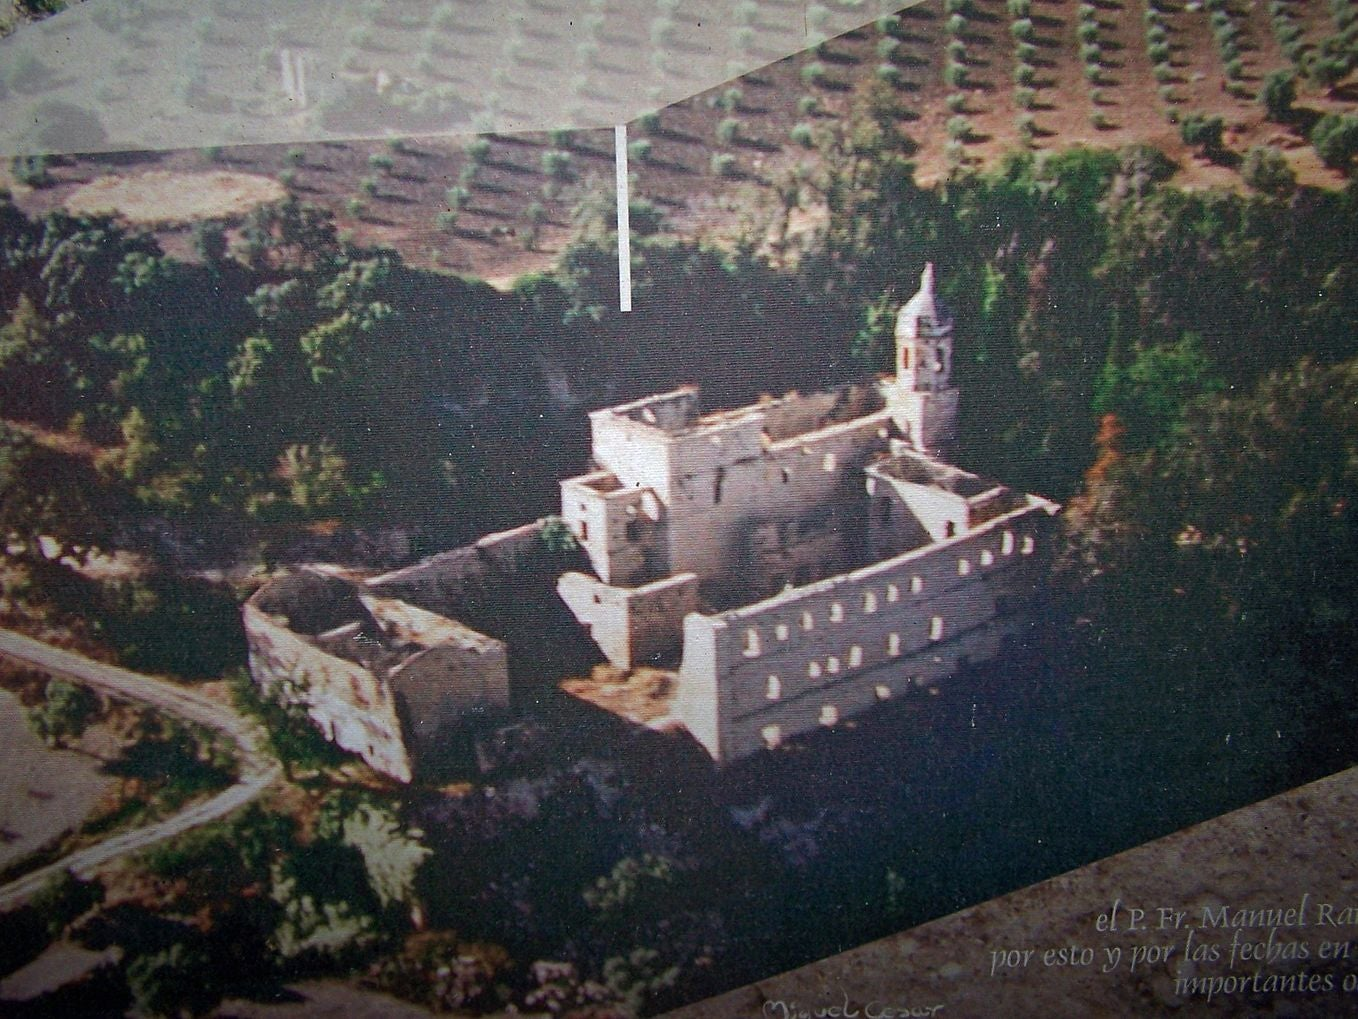 Aerial Photography in Alcalá del Valle